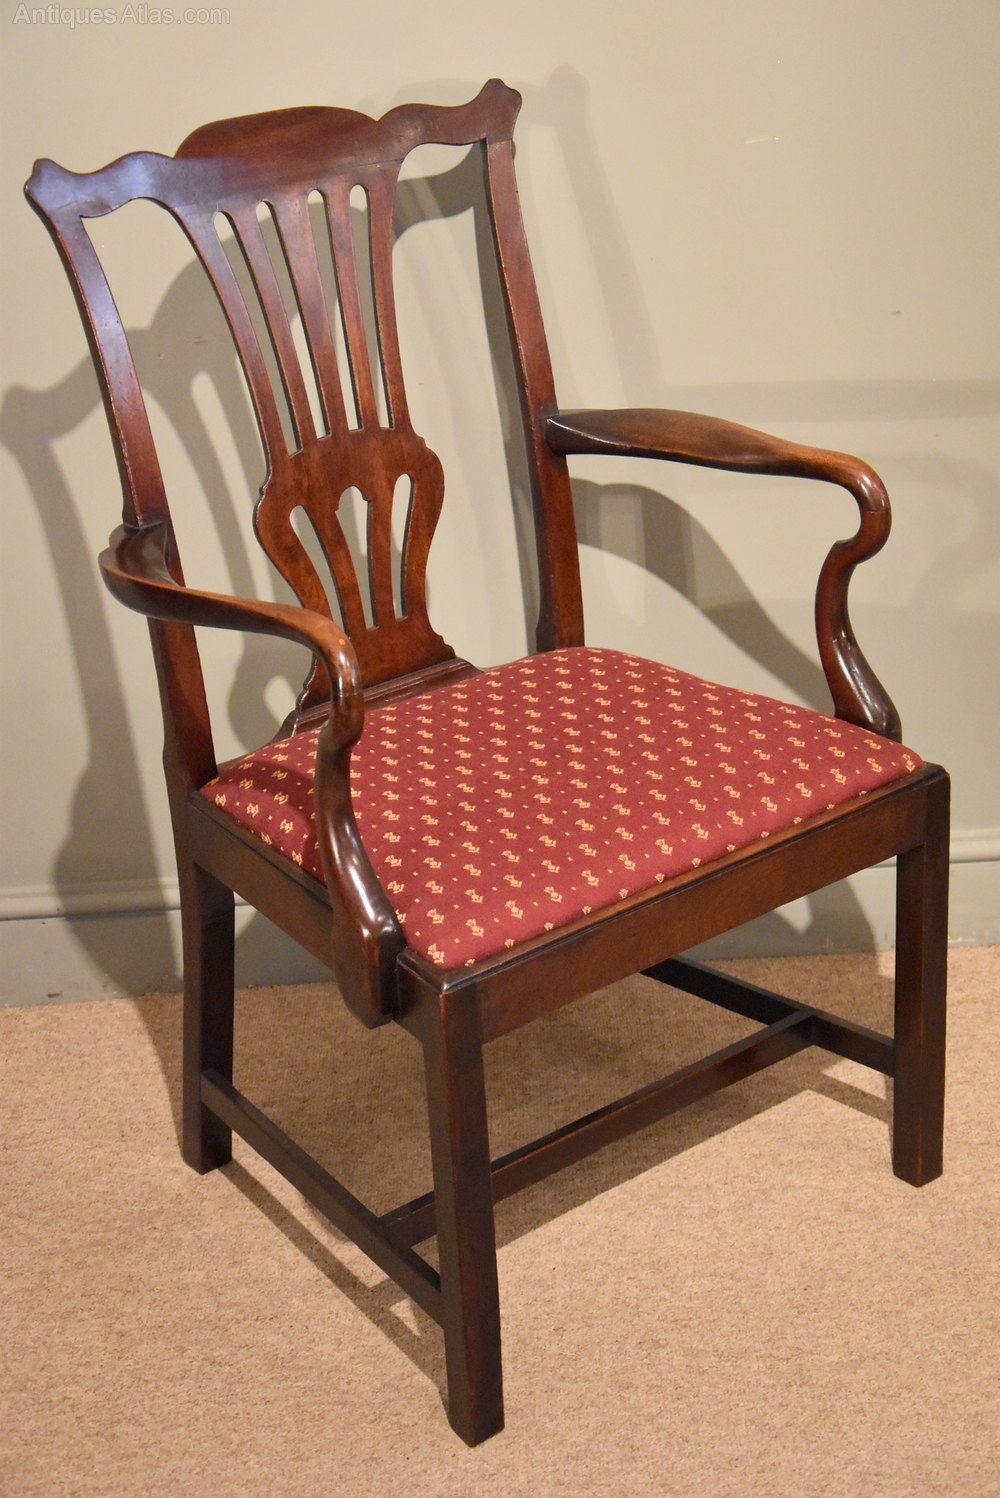 Large and handsome chippendale period mahogany arm chair